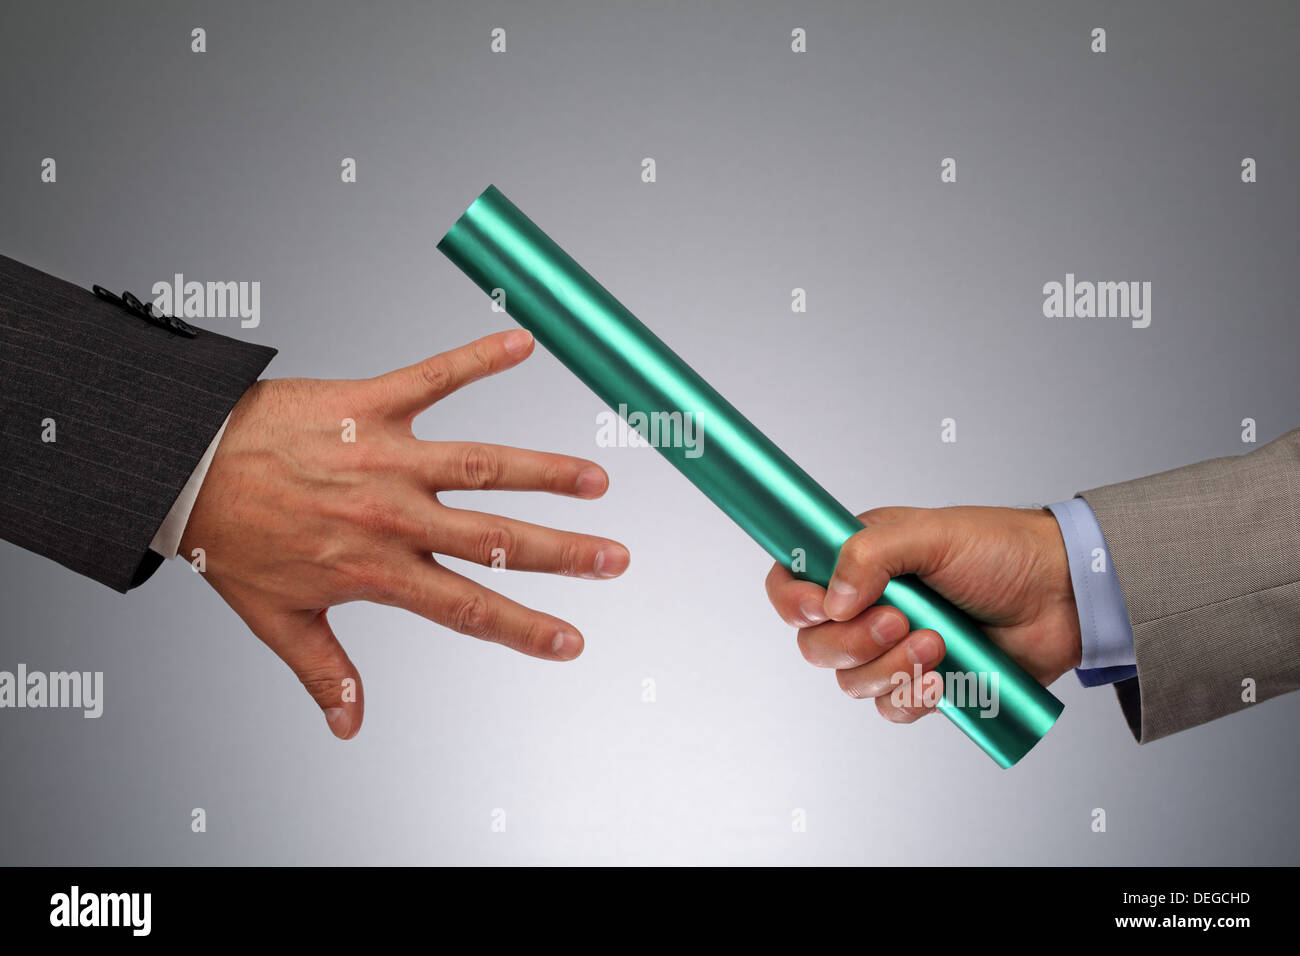 Teamwork passing the baton - Stock Image